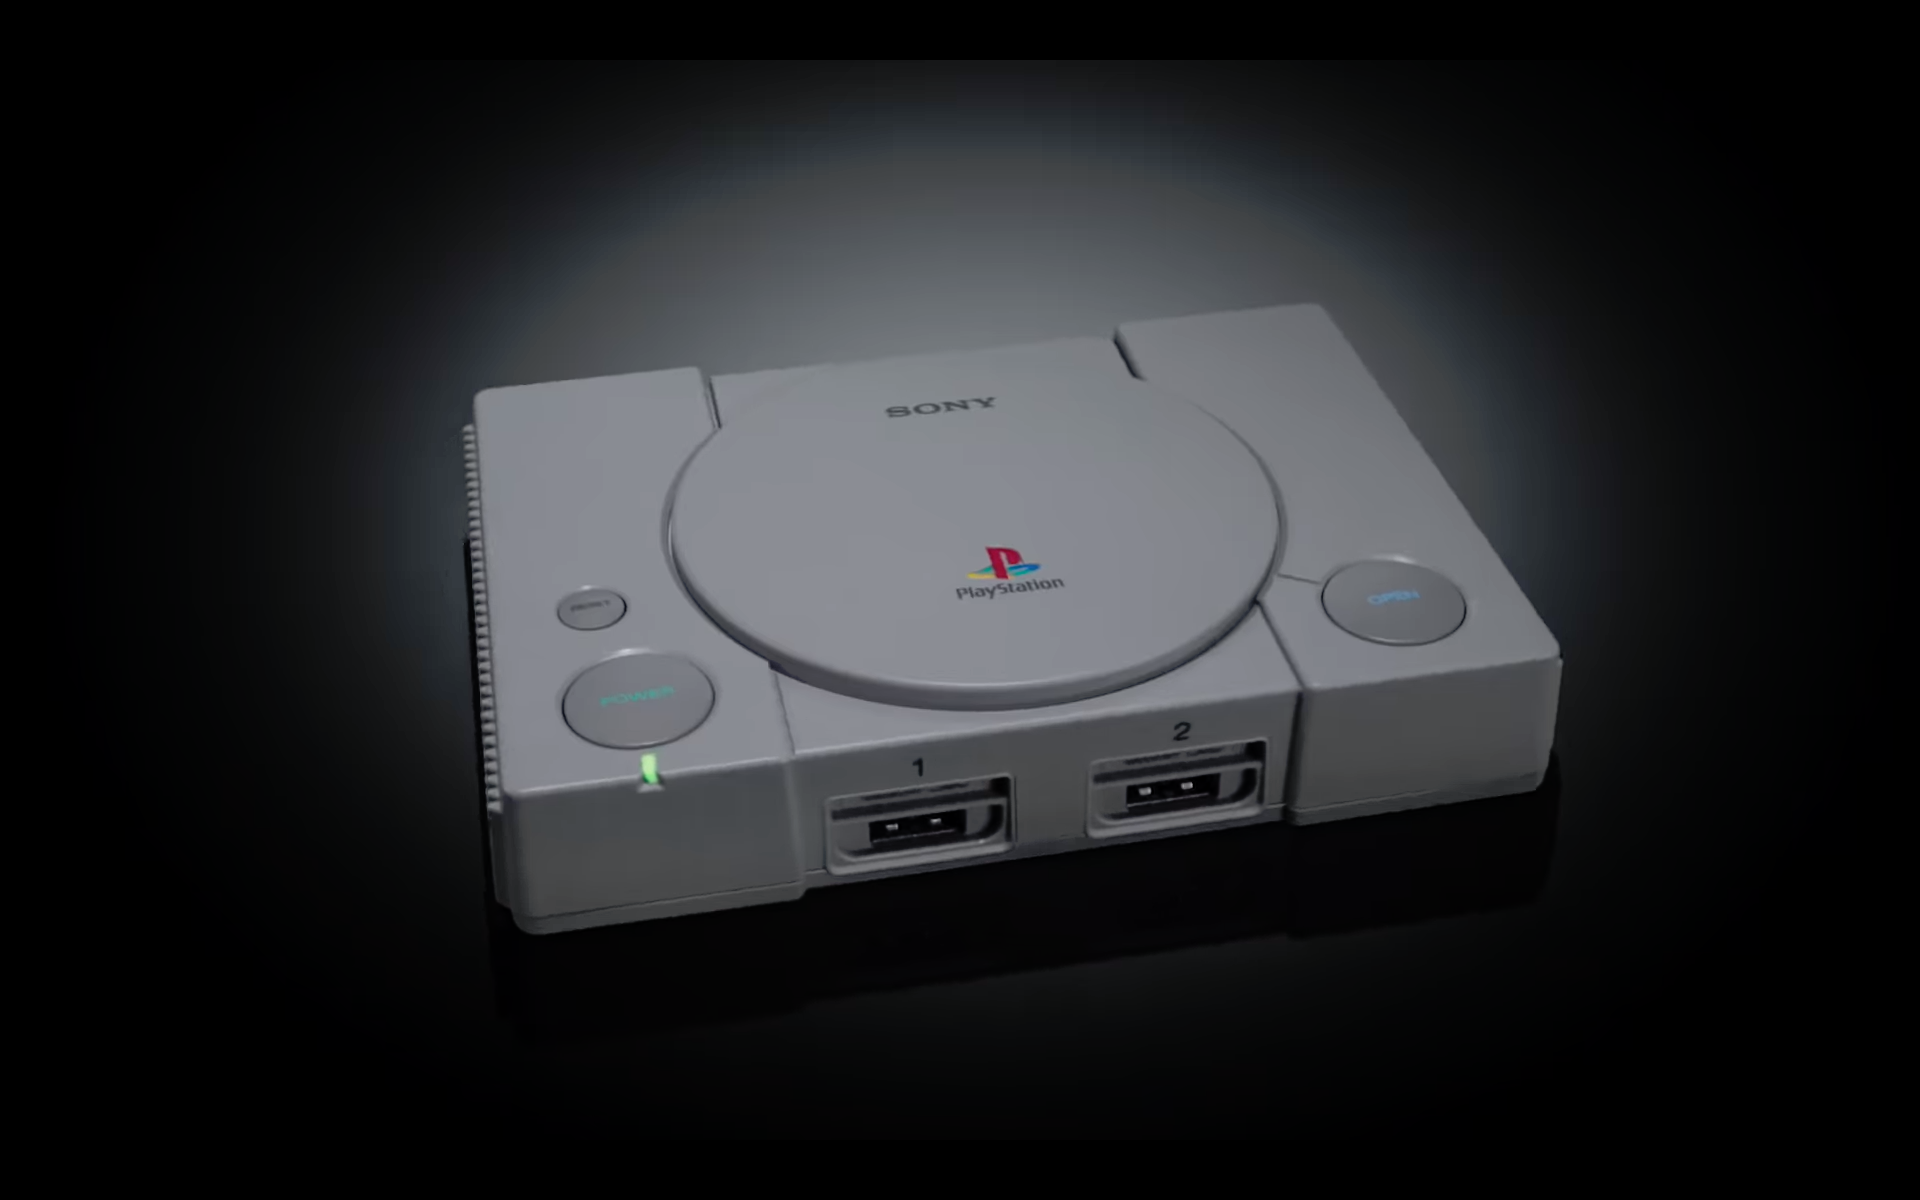 The Playstation Classic